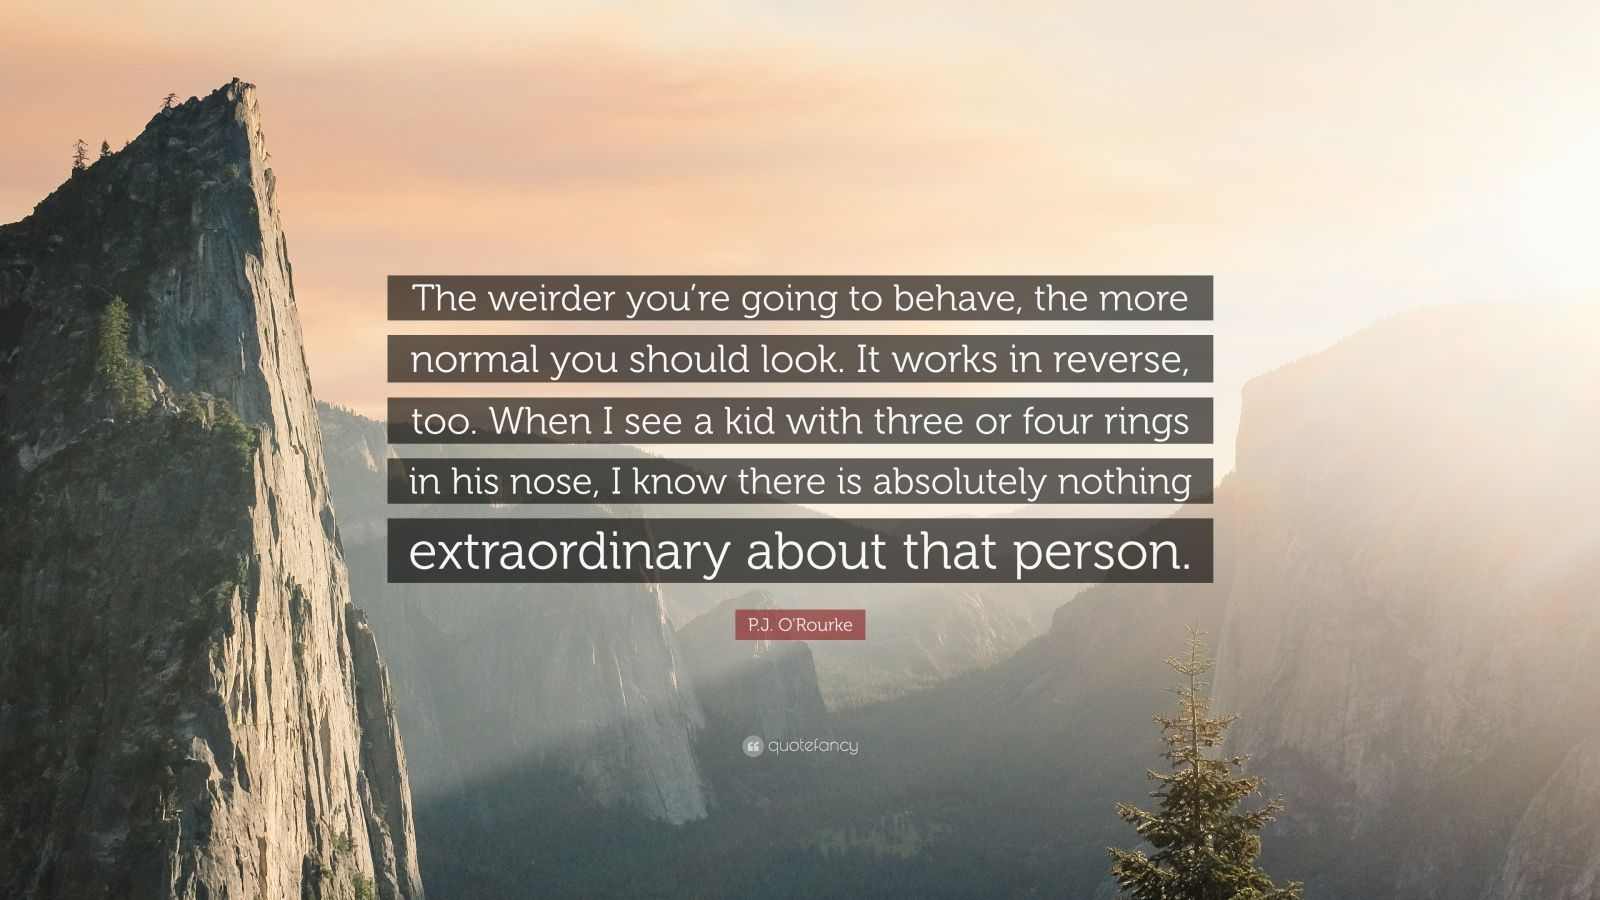 """P.J. O'Rourke Quote: """"The weirder you're going to behave, the more normal you should look. It works in reverse, too. When I see a kid with three or four rings in his nose, I know there is absolutely nothing extraordinary about that person."""""""